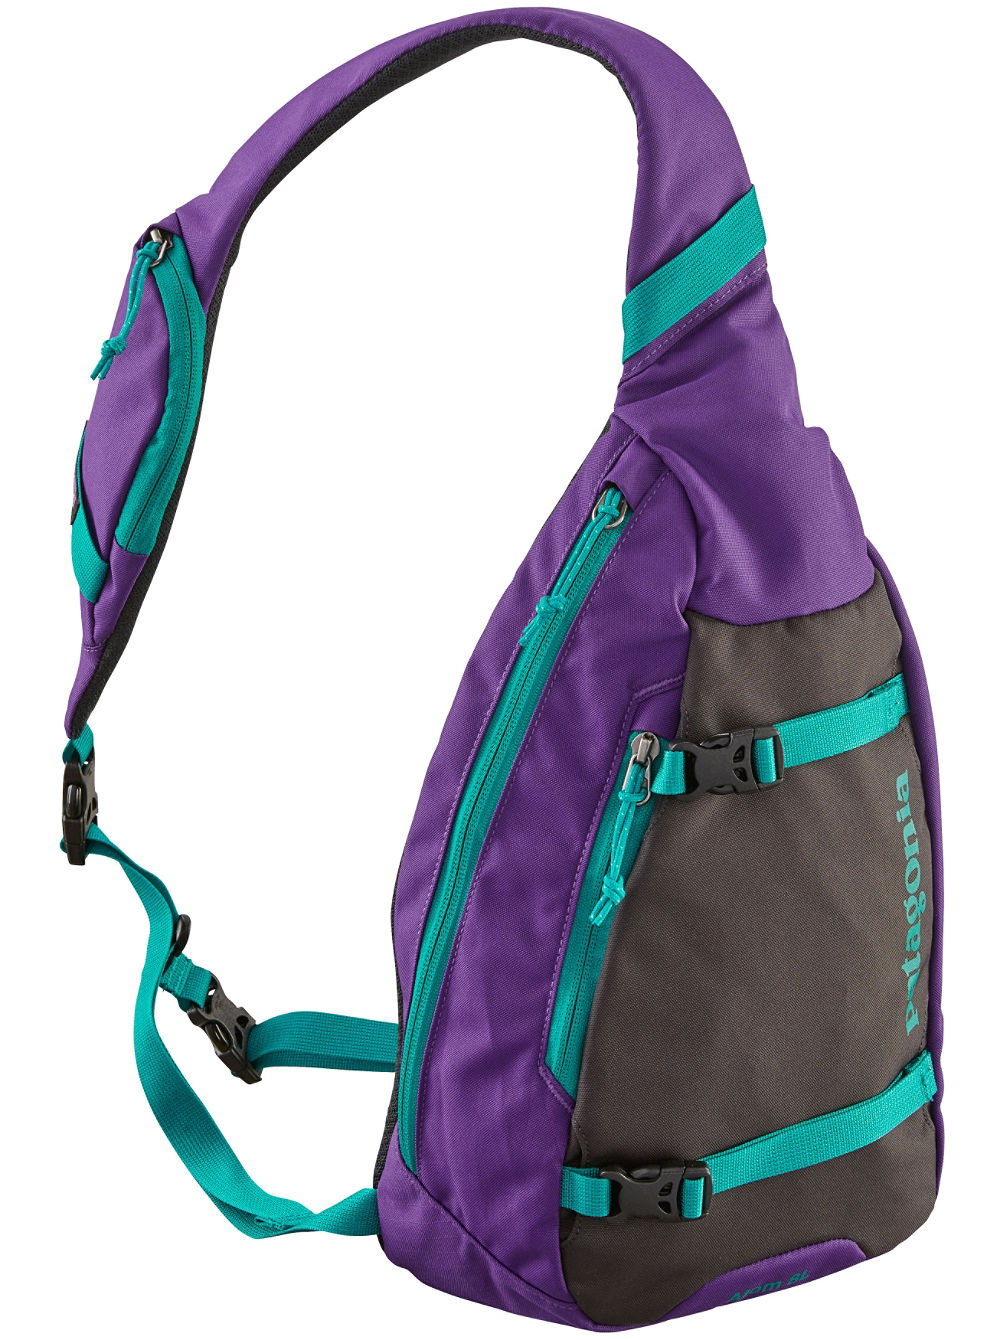 Buy Patagonia Atom Sling Bag online at blue-tomato.com